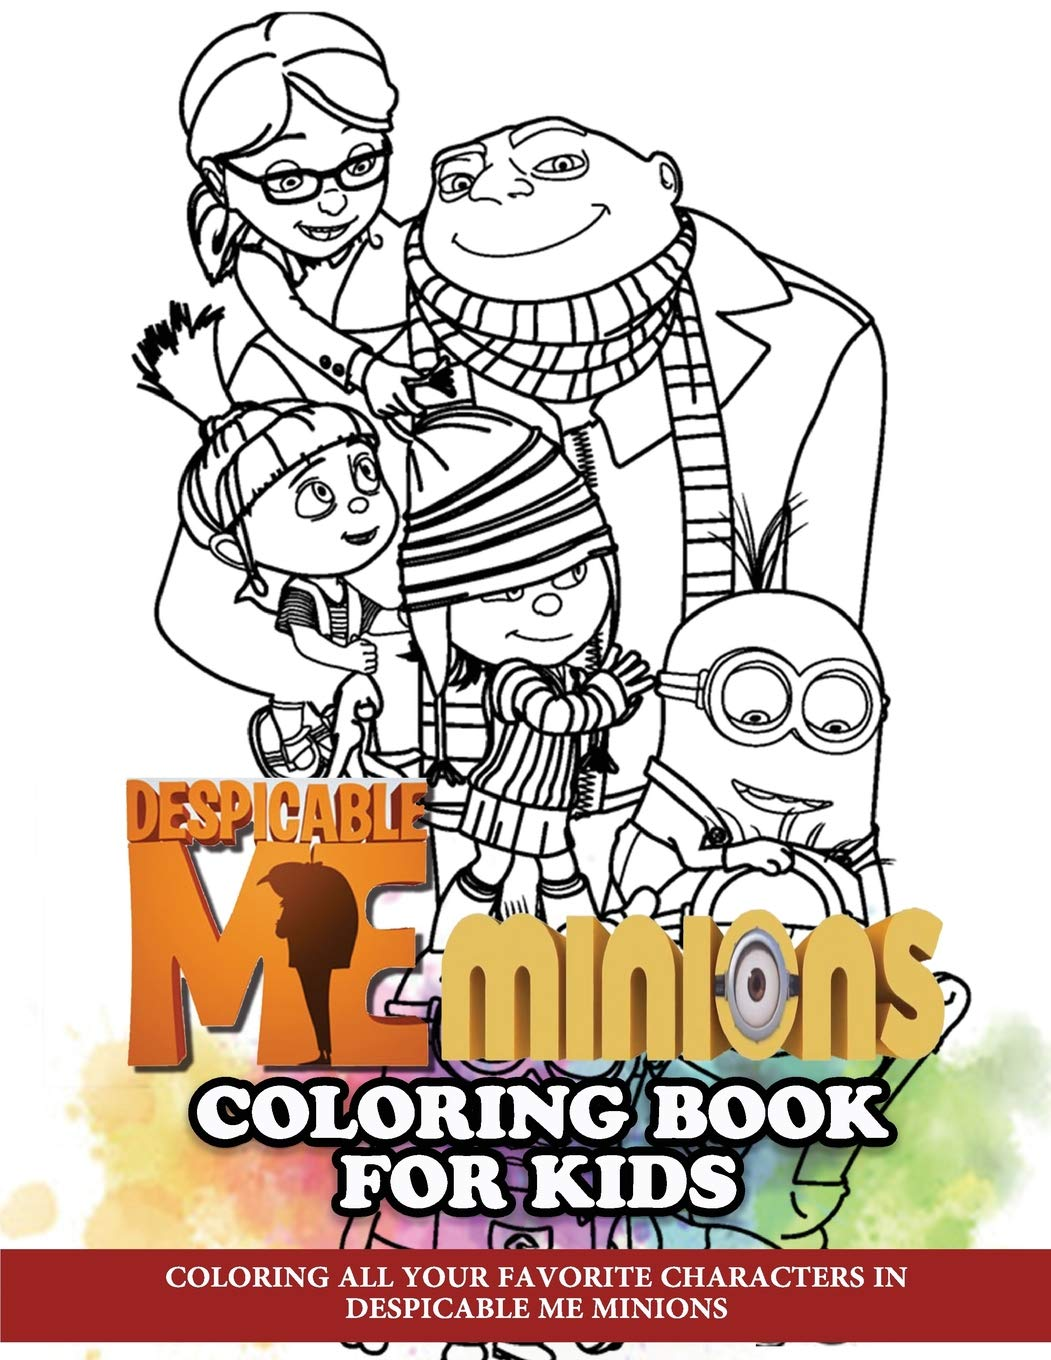 - Despicable Me Minions Coloring Book For Kids: Coloring All Your